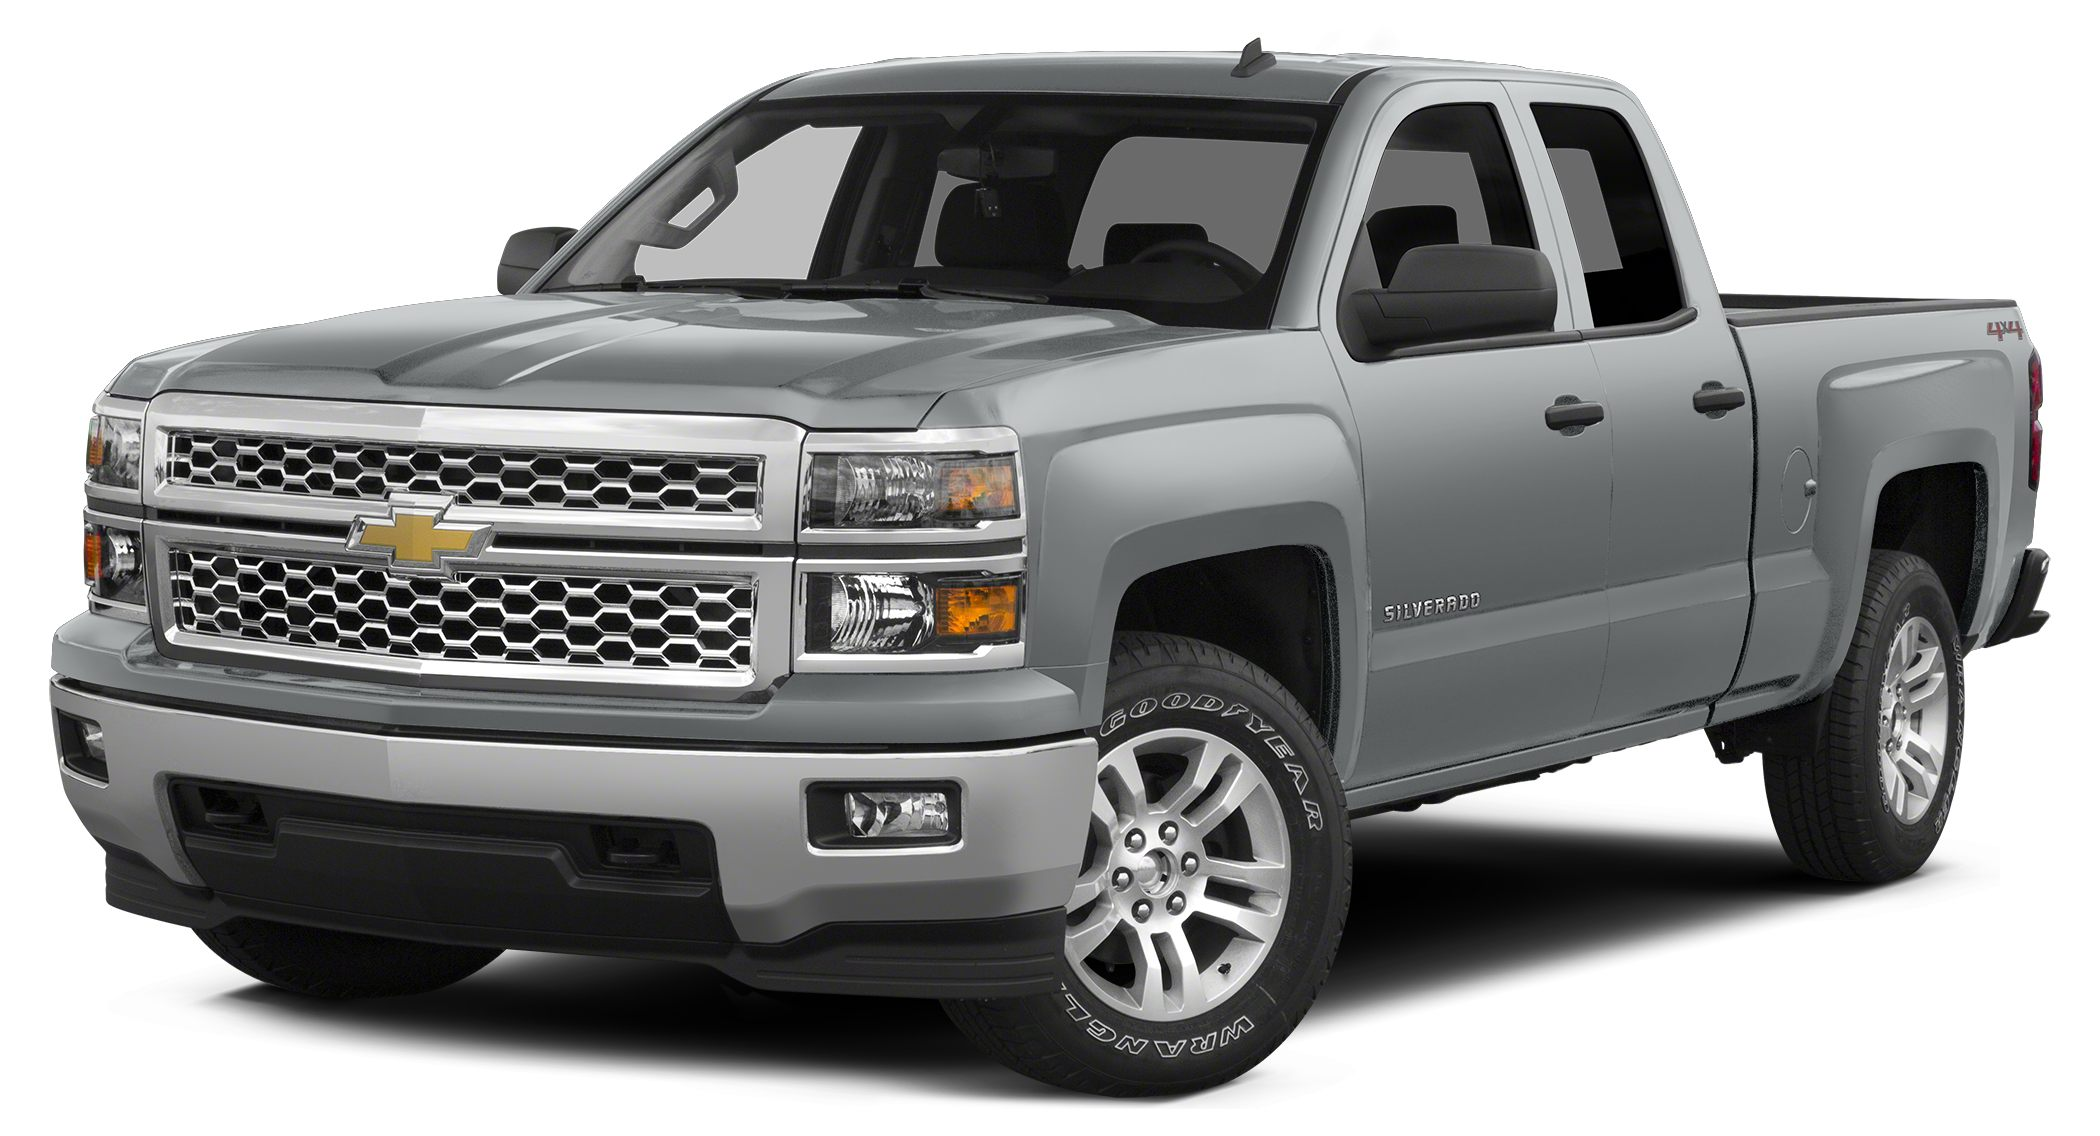 2014 Chevrolet Silverado 1500 WT FUEL EFFICIENT 24 MPG Hwy18 MPG City CARFAX 1-Owner GREAT MILE